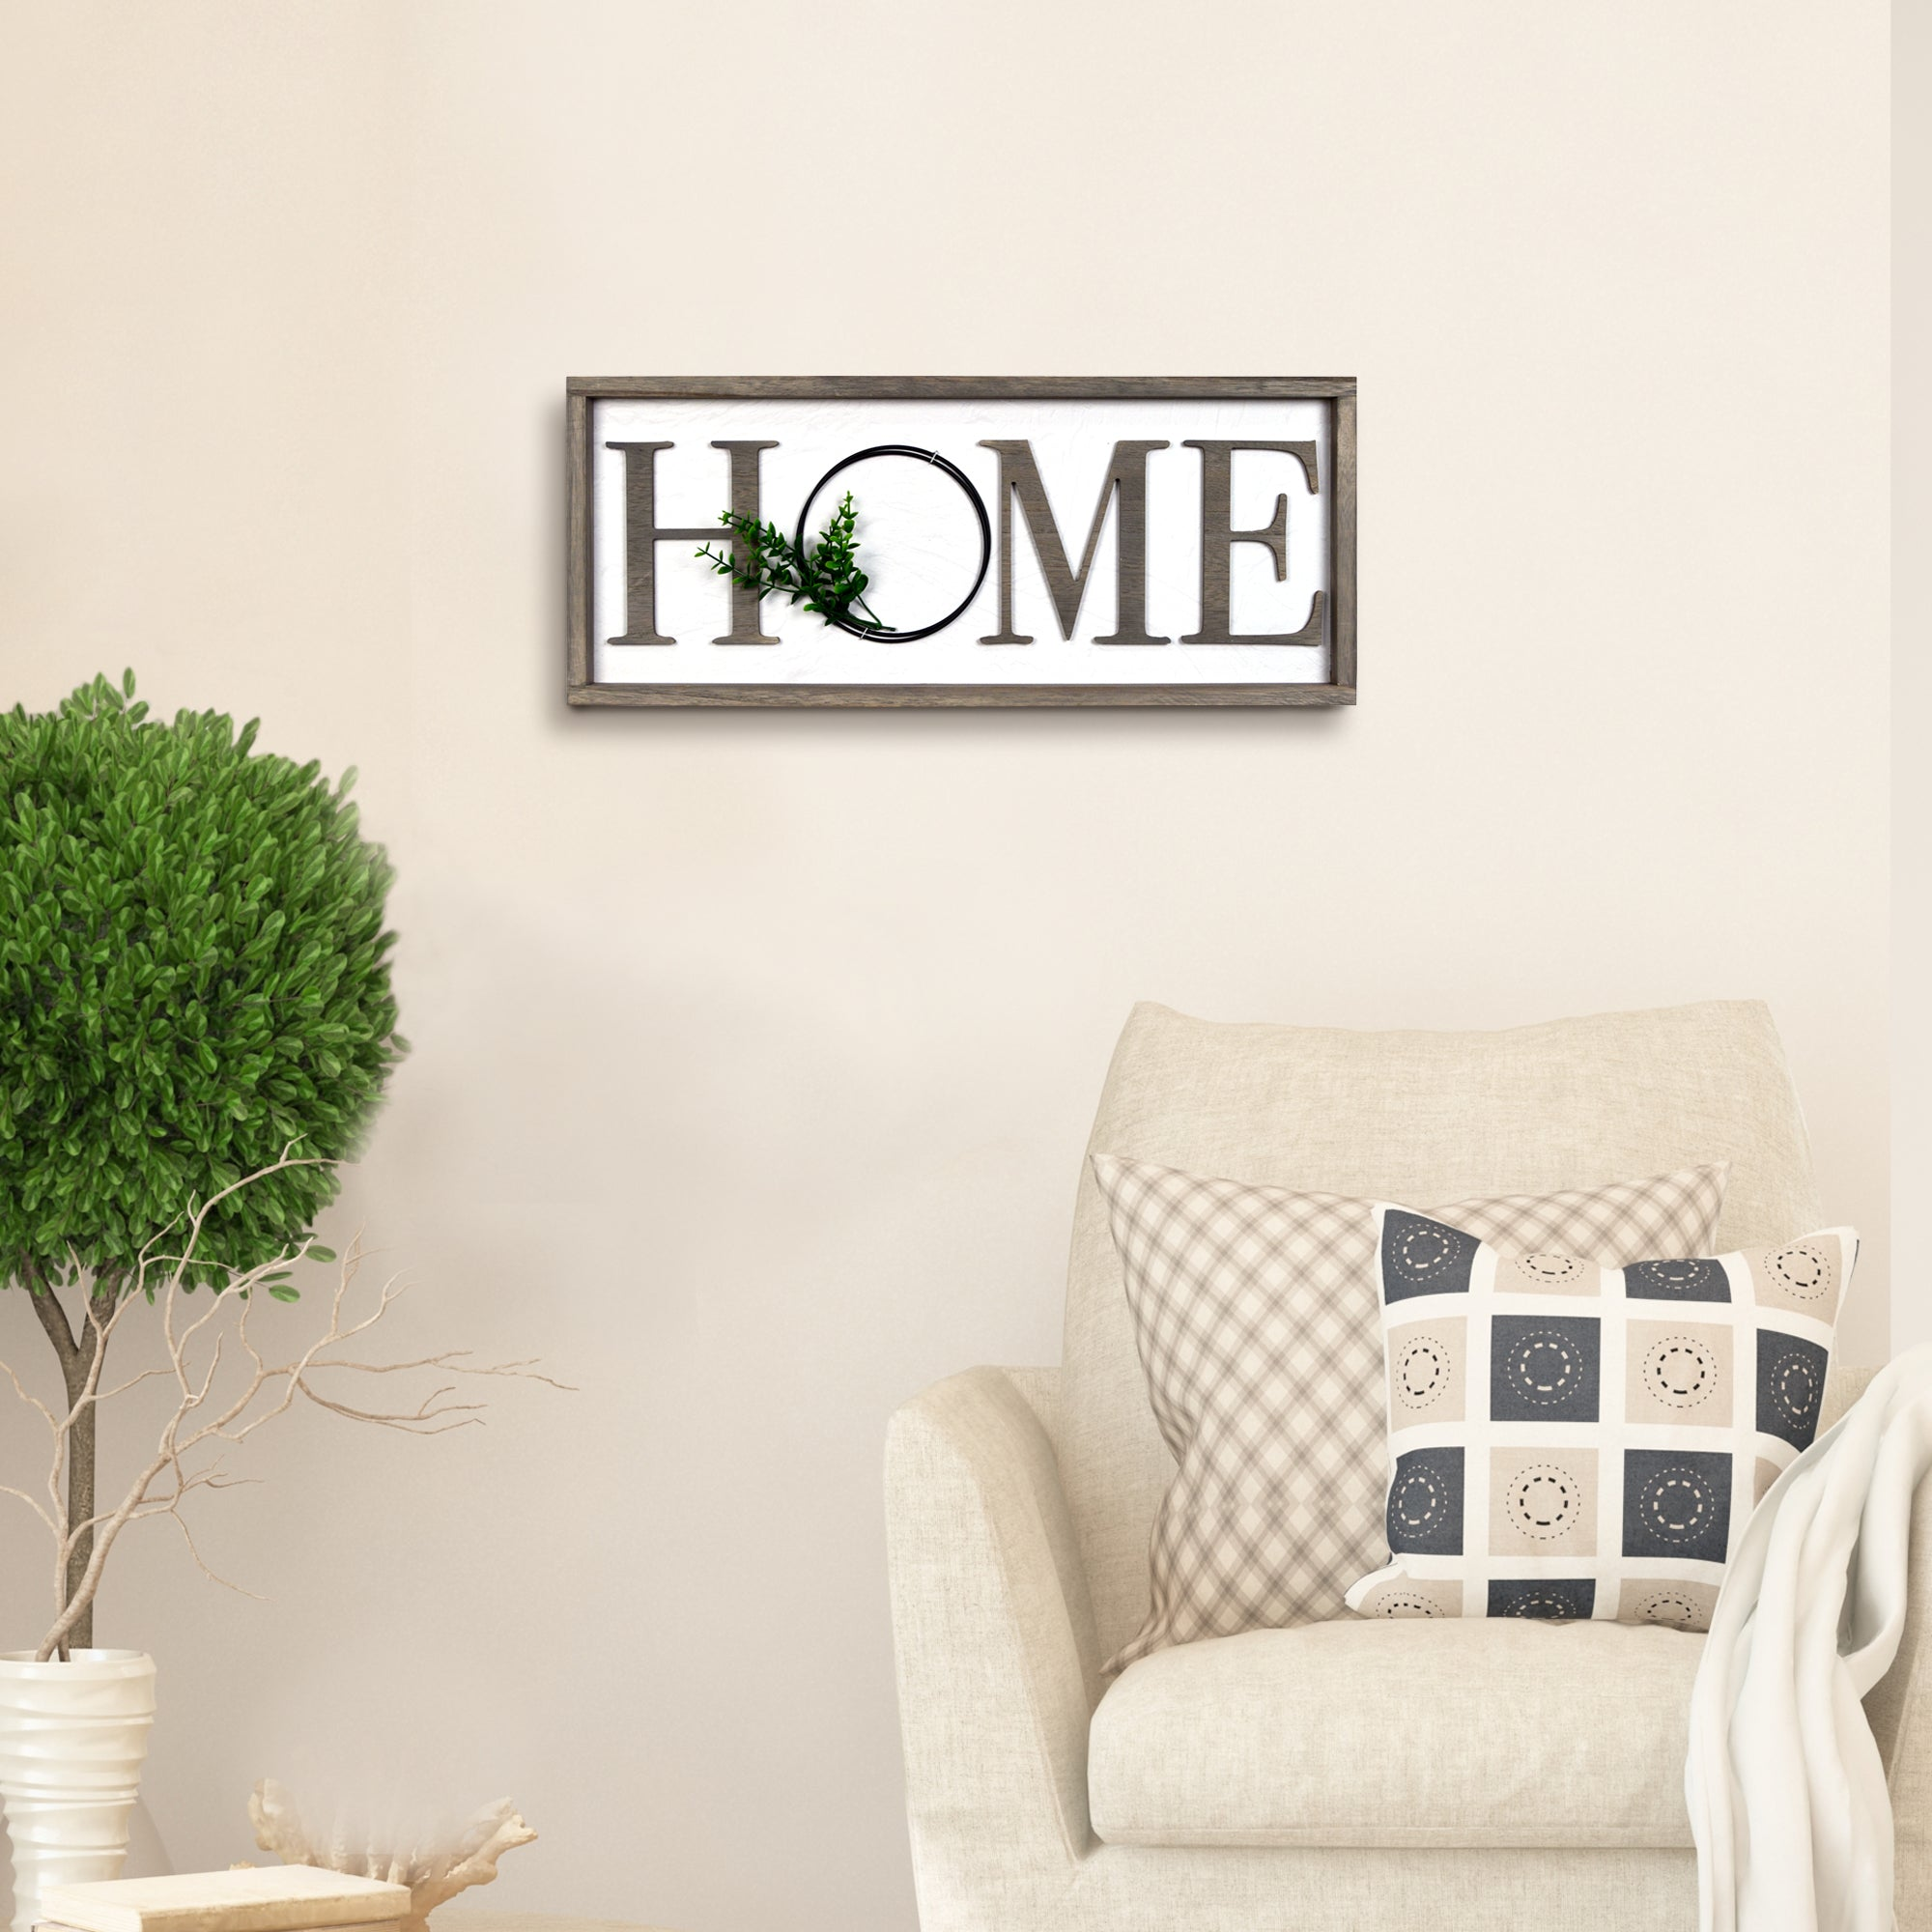 Home Rustic Real Barnwood Whitewashed Plaque